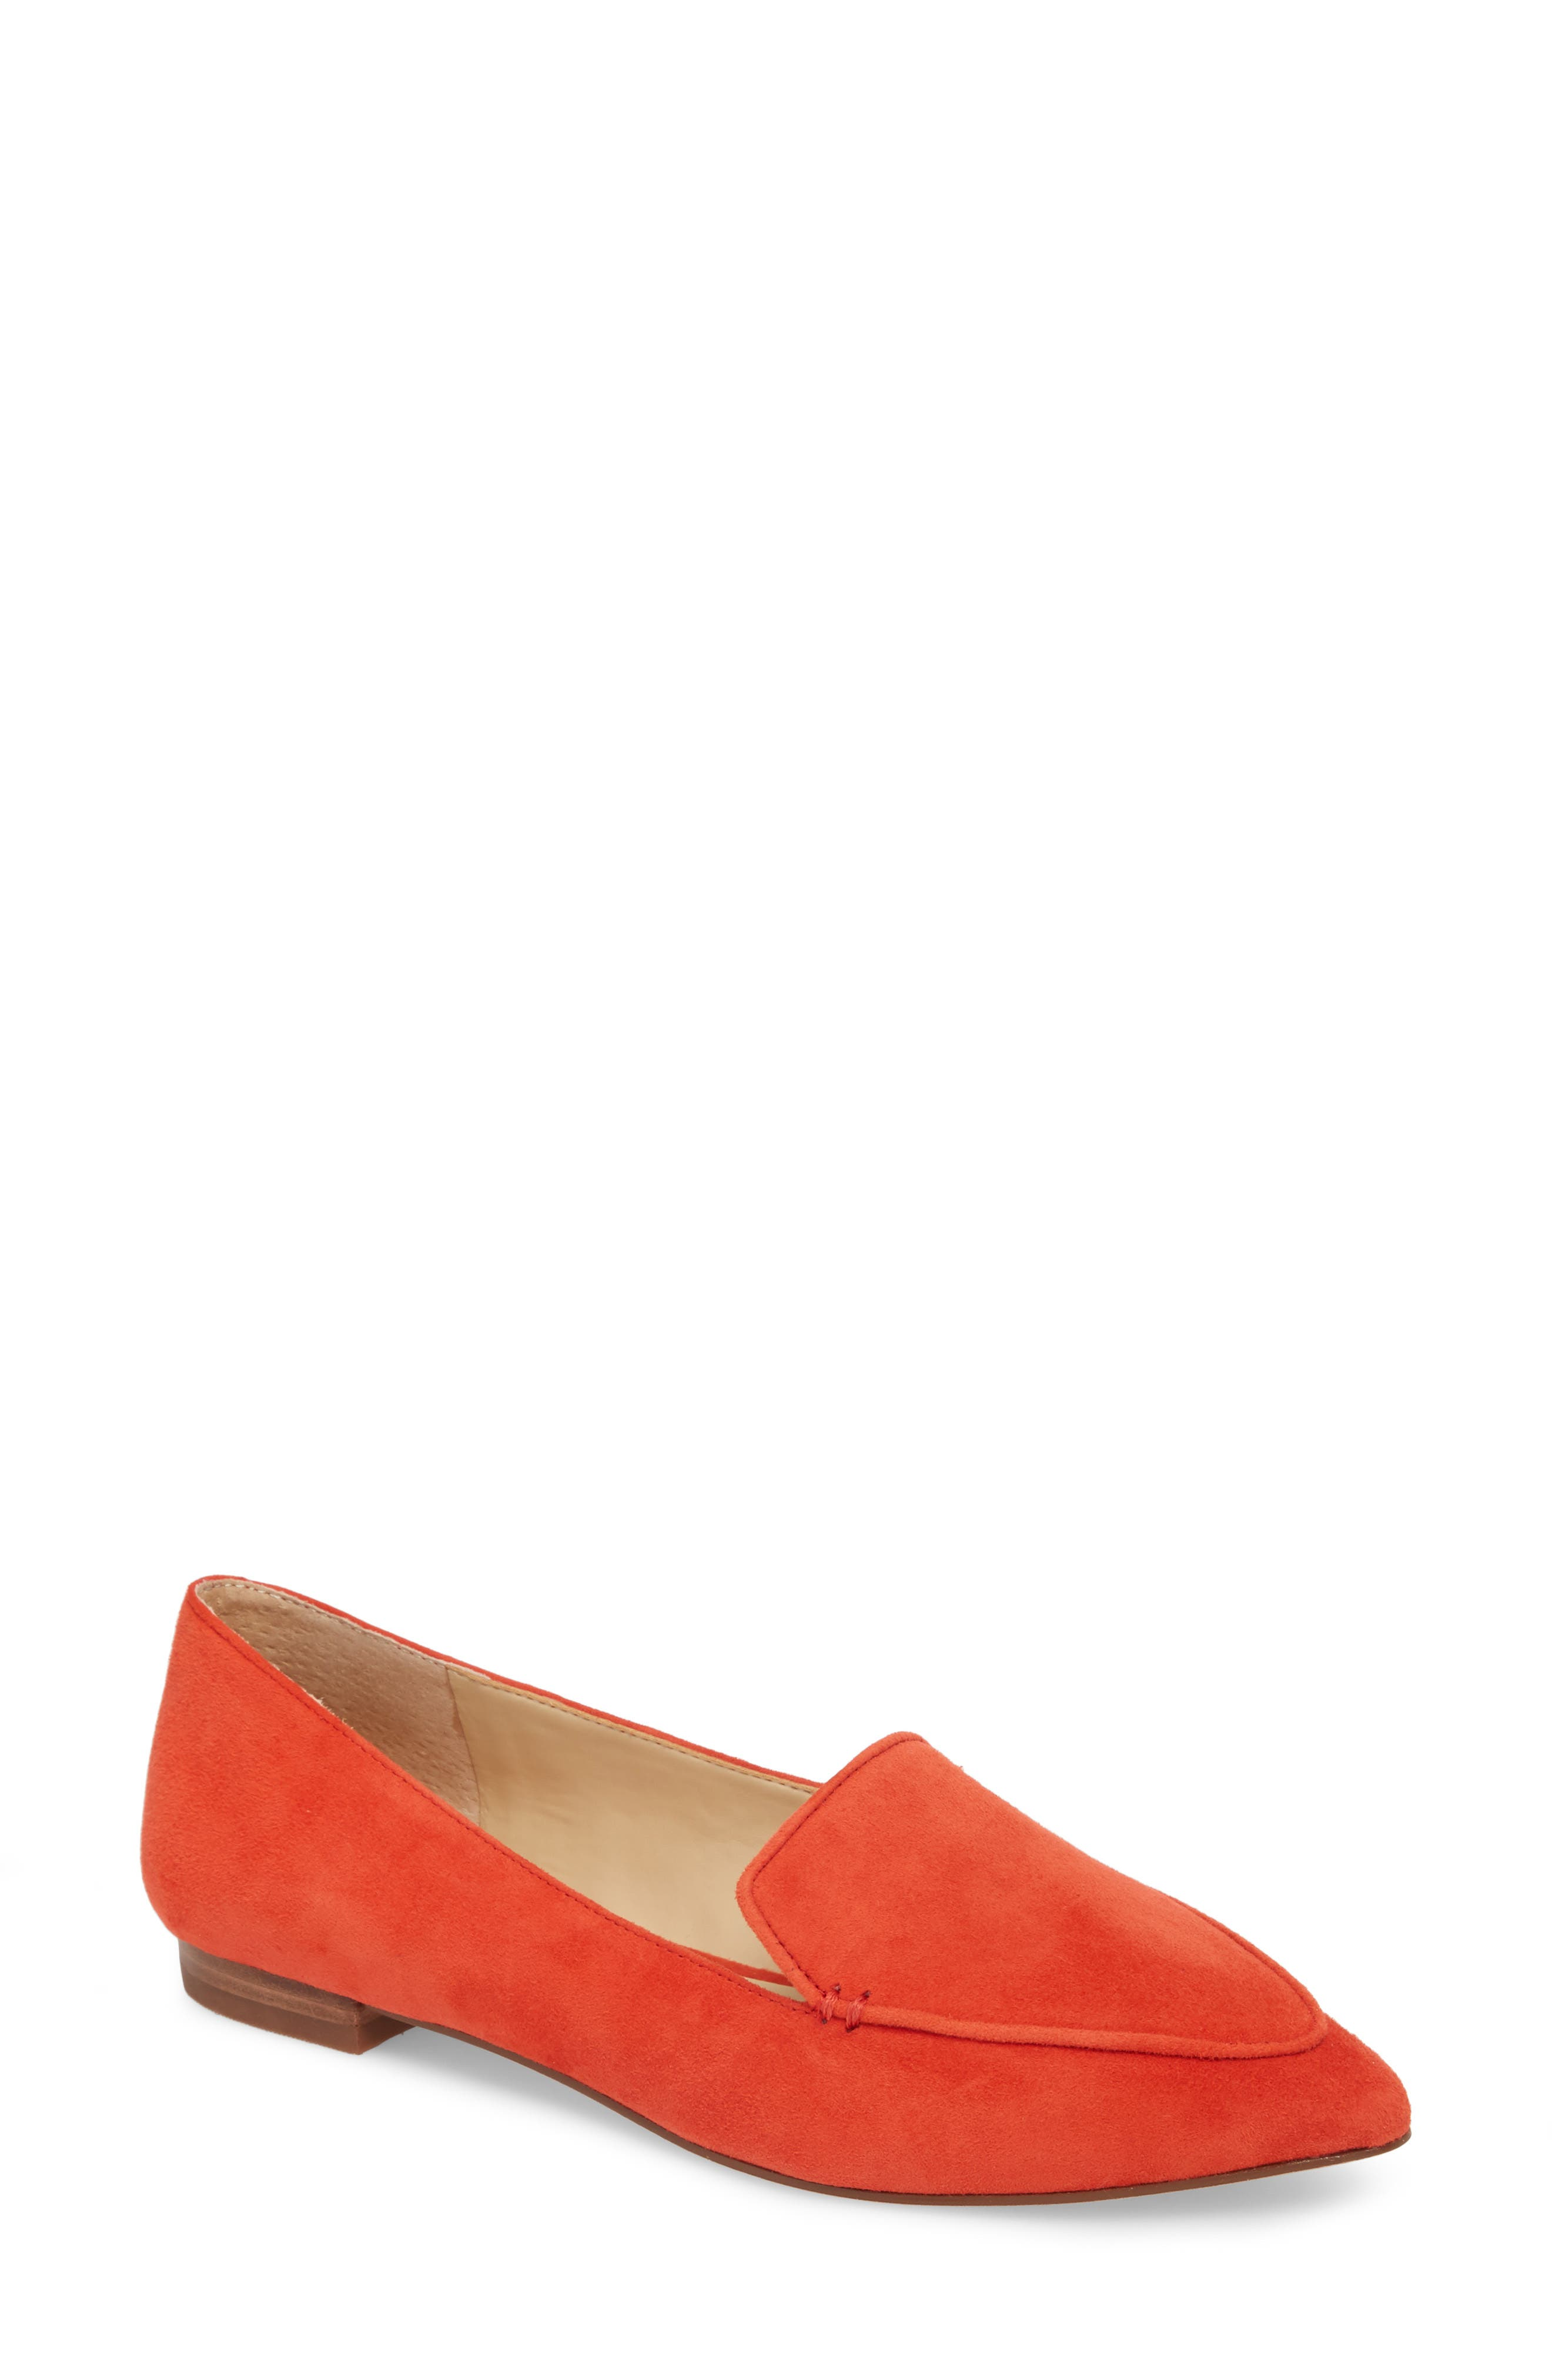 'Cammila' Pointy Toe Loafer,                         Main,                         color, Deep Coral